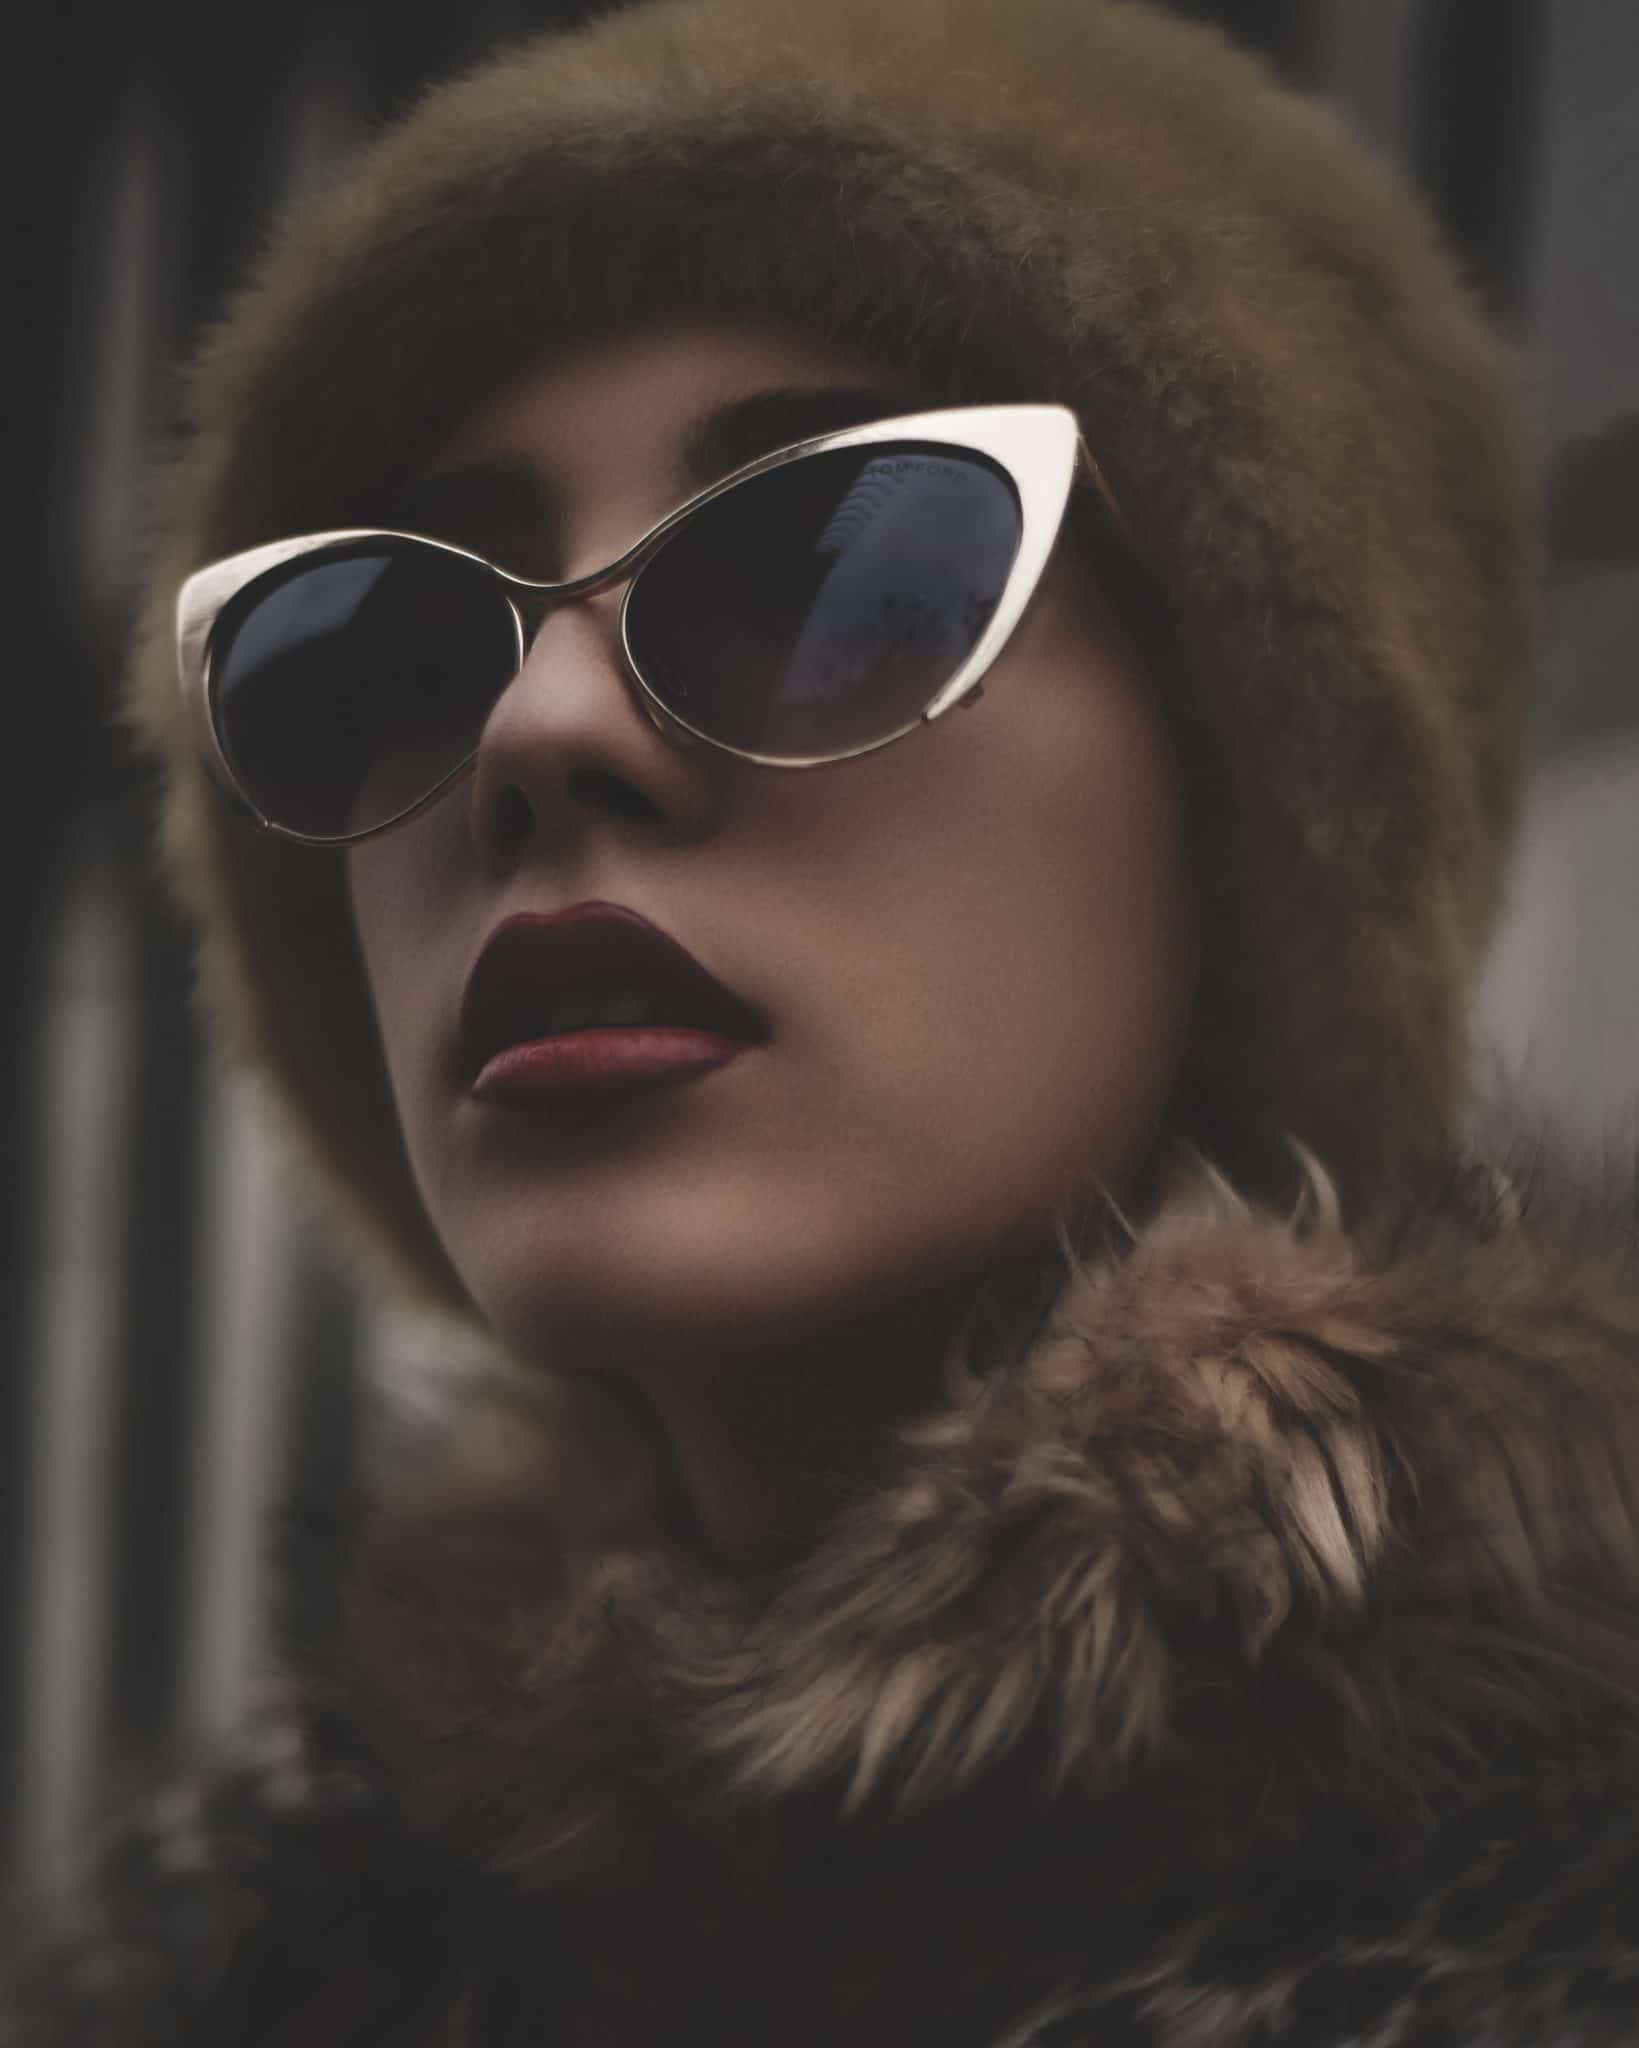 The 10 Best Sunglasses To Buy Your Girlfriend